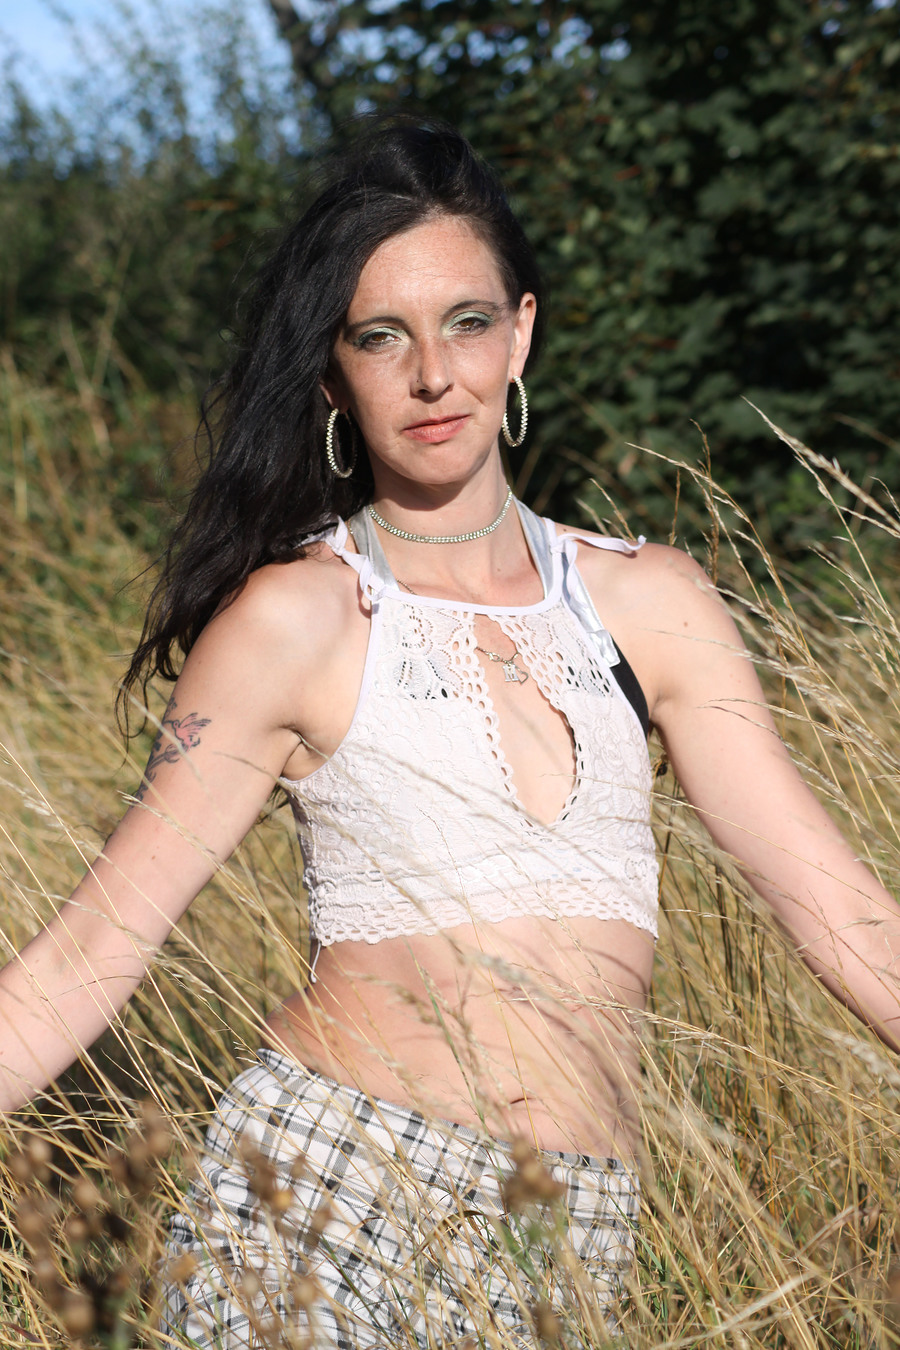 Out In The Fields / Photography by Fenland Photographic, Model diamond m / Uploaded 23rd August 2020 @ 09:23 PM